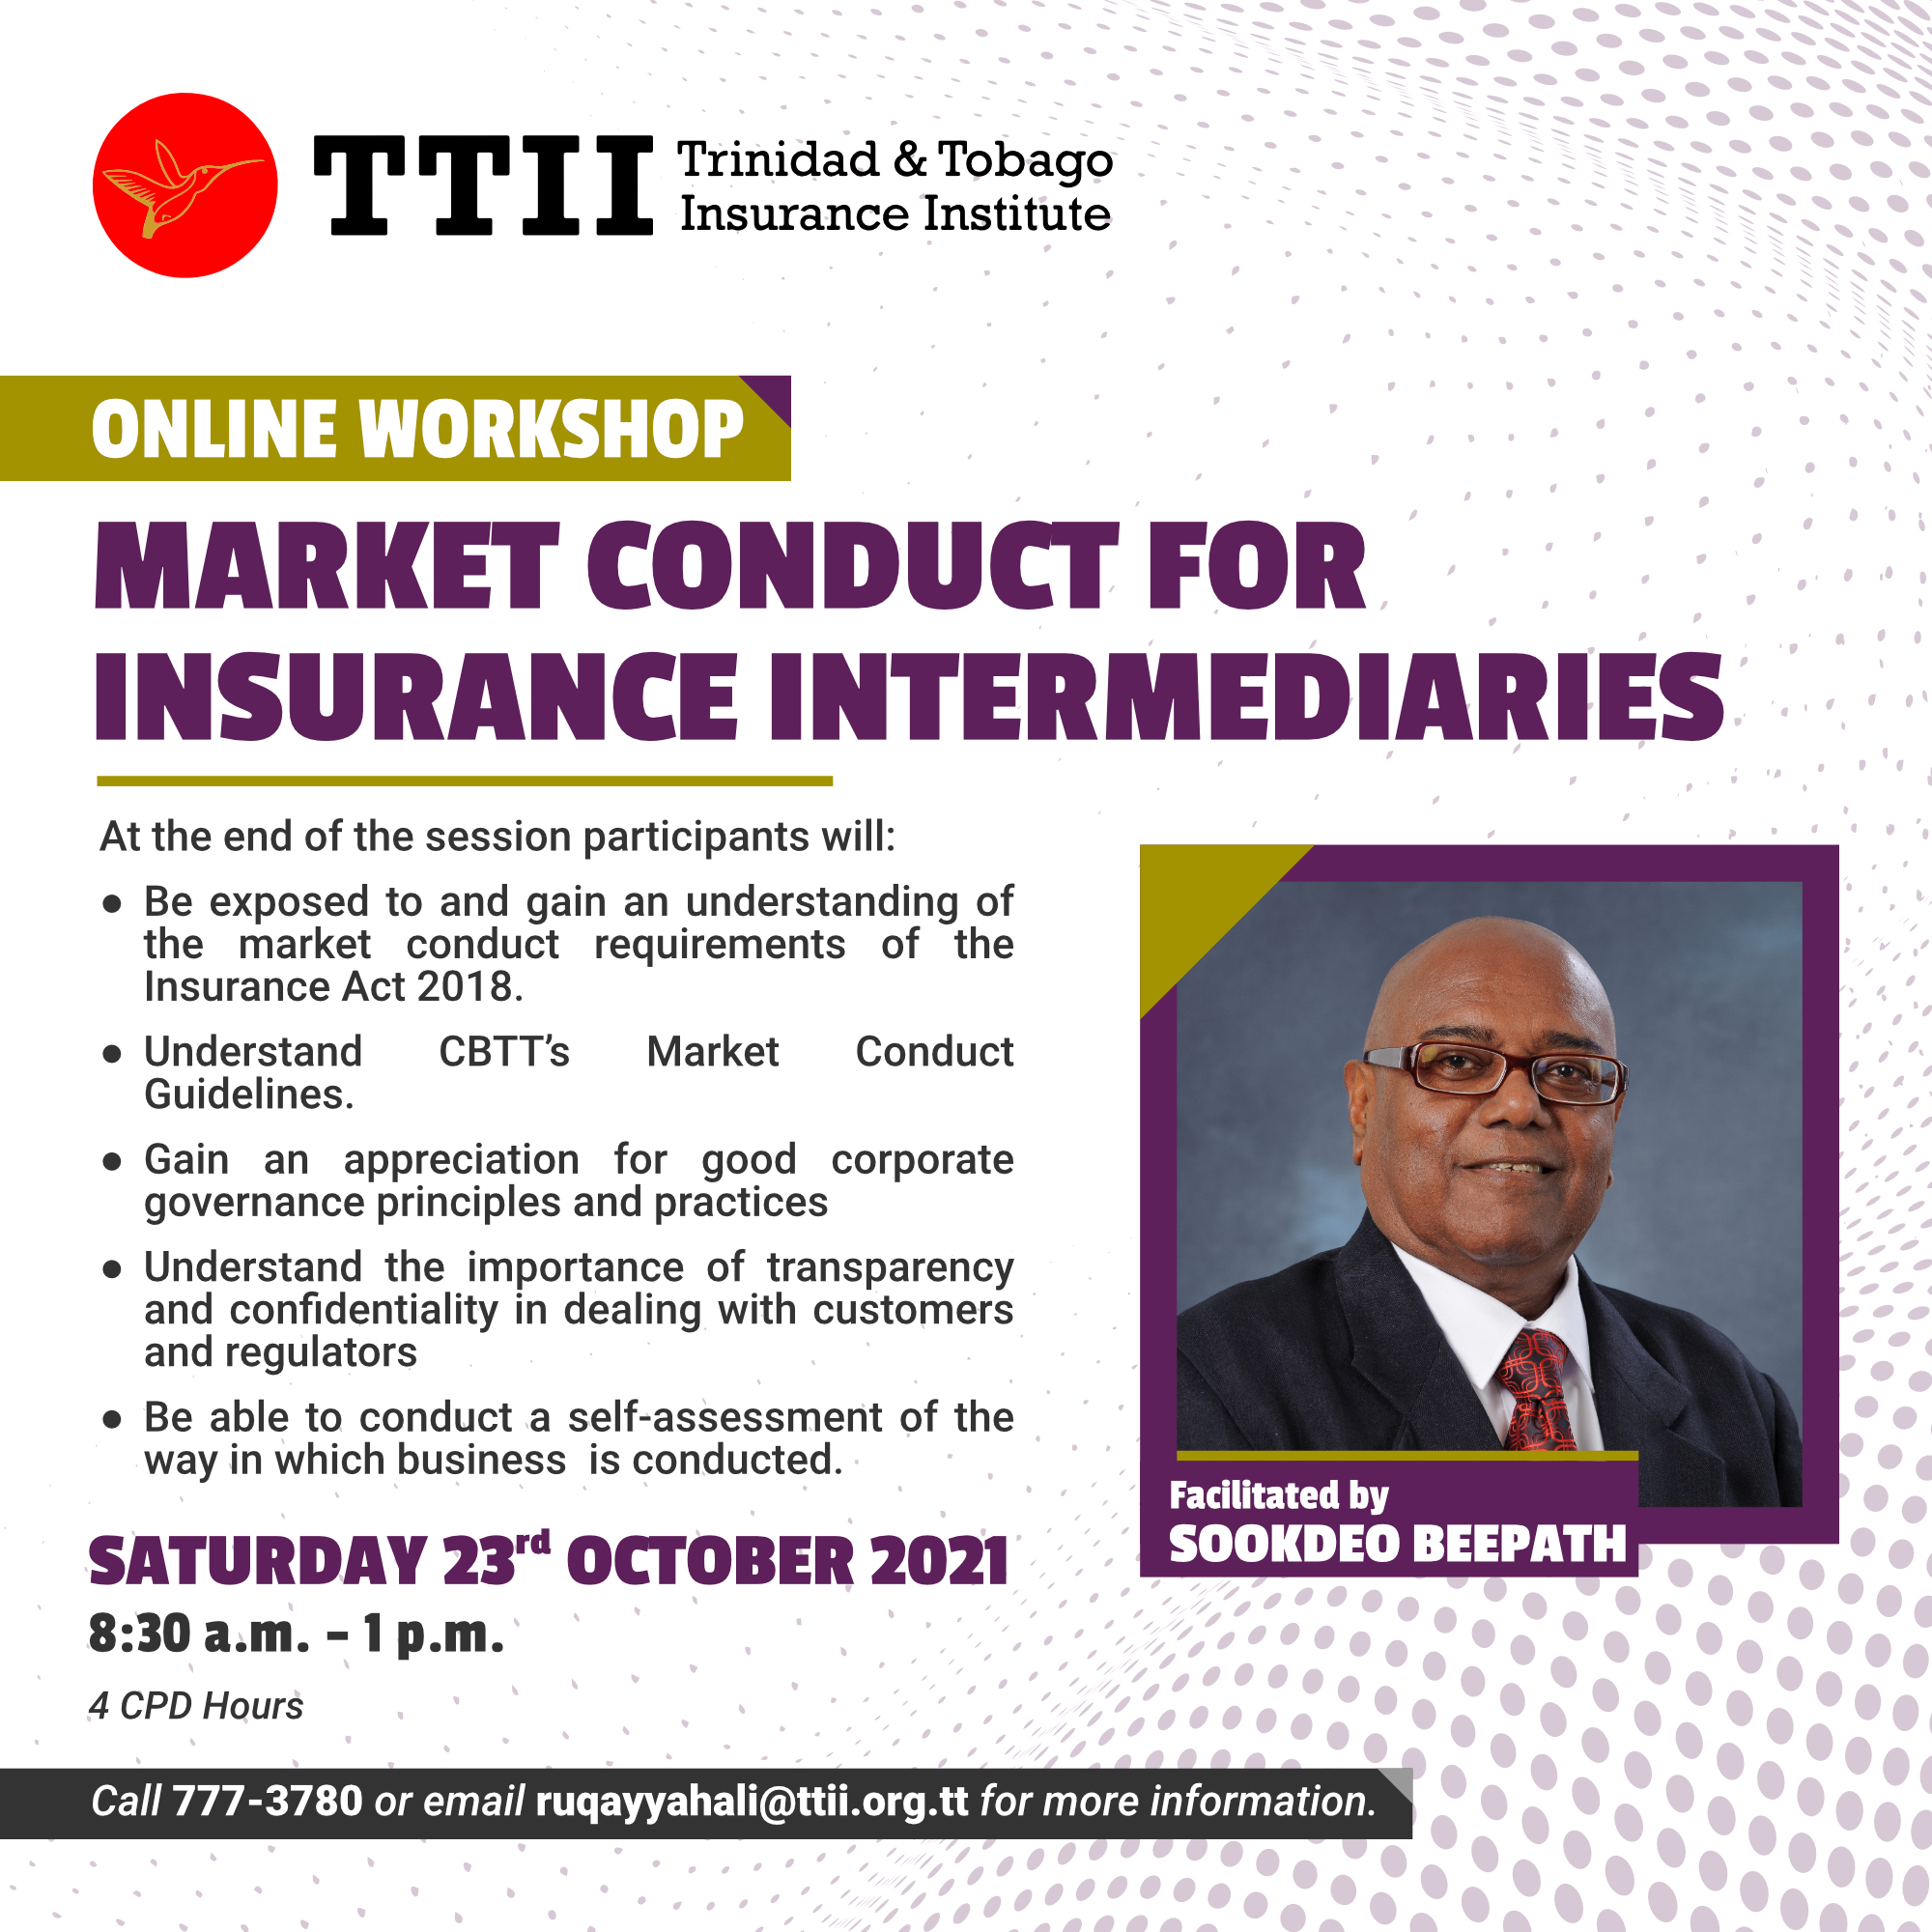 Market Conduct for Insurance Intermediaries